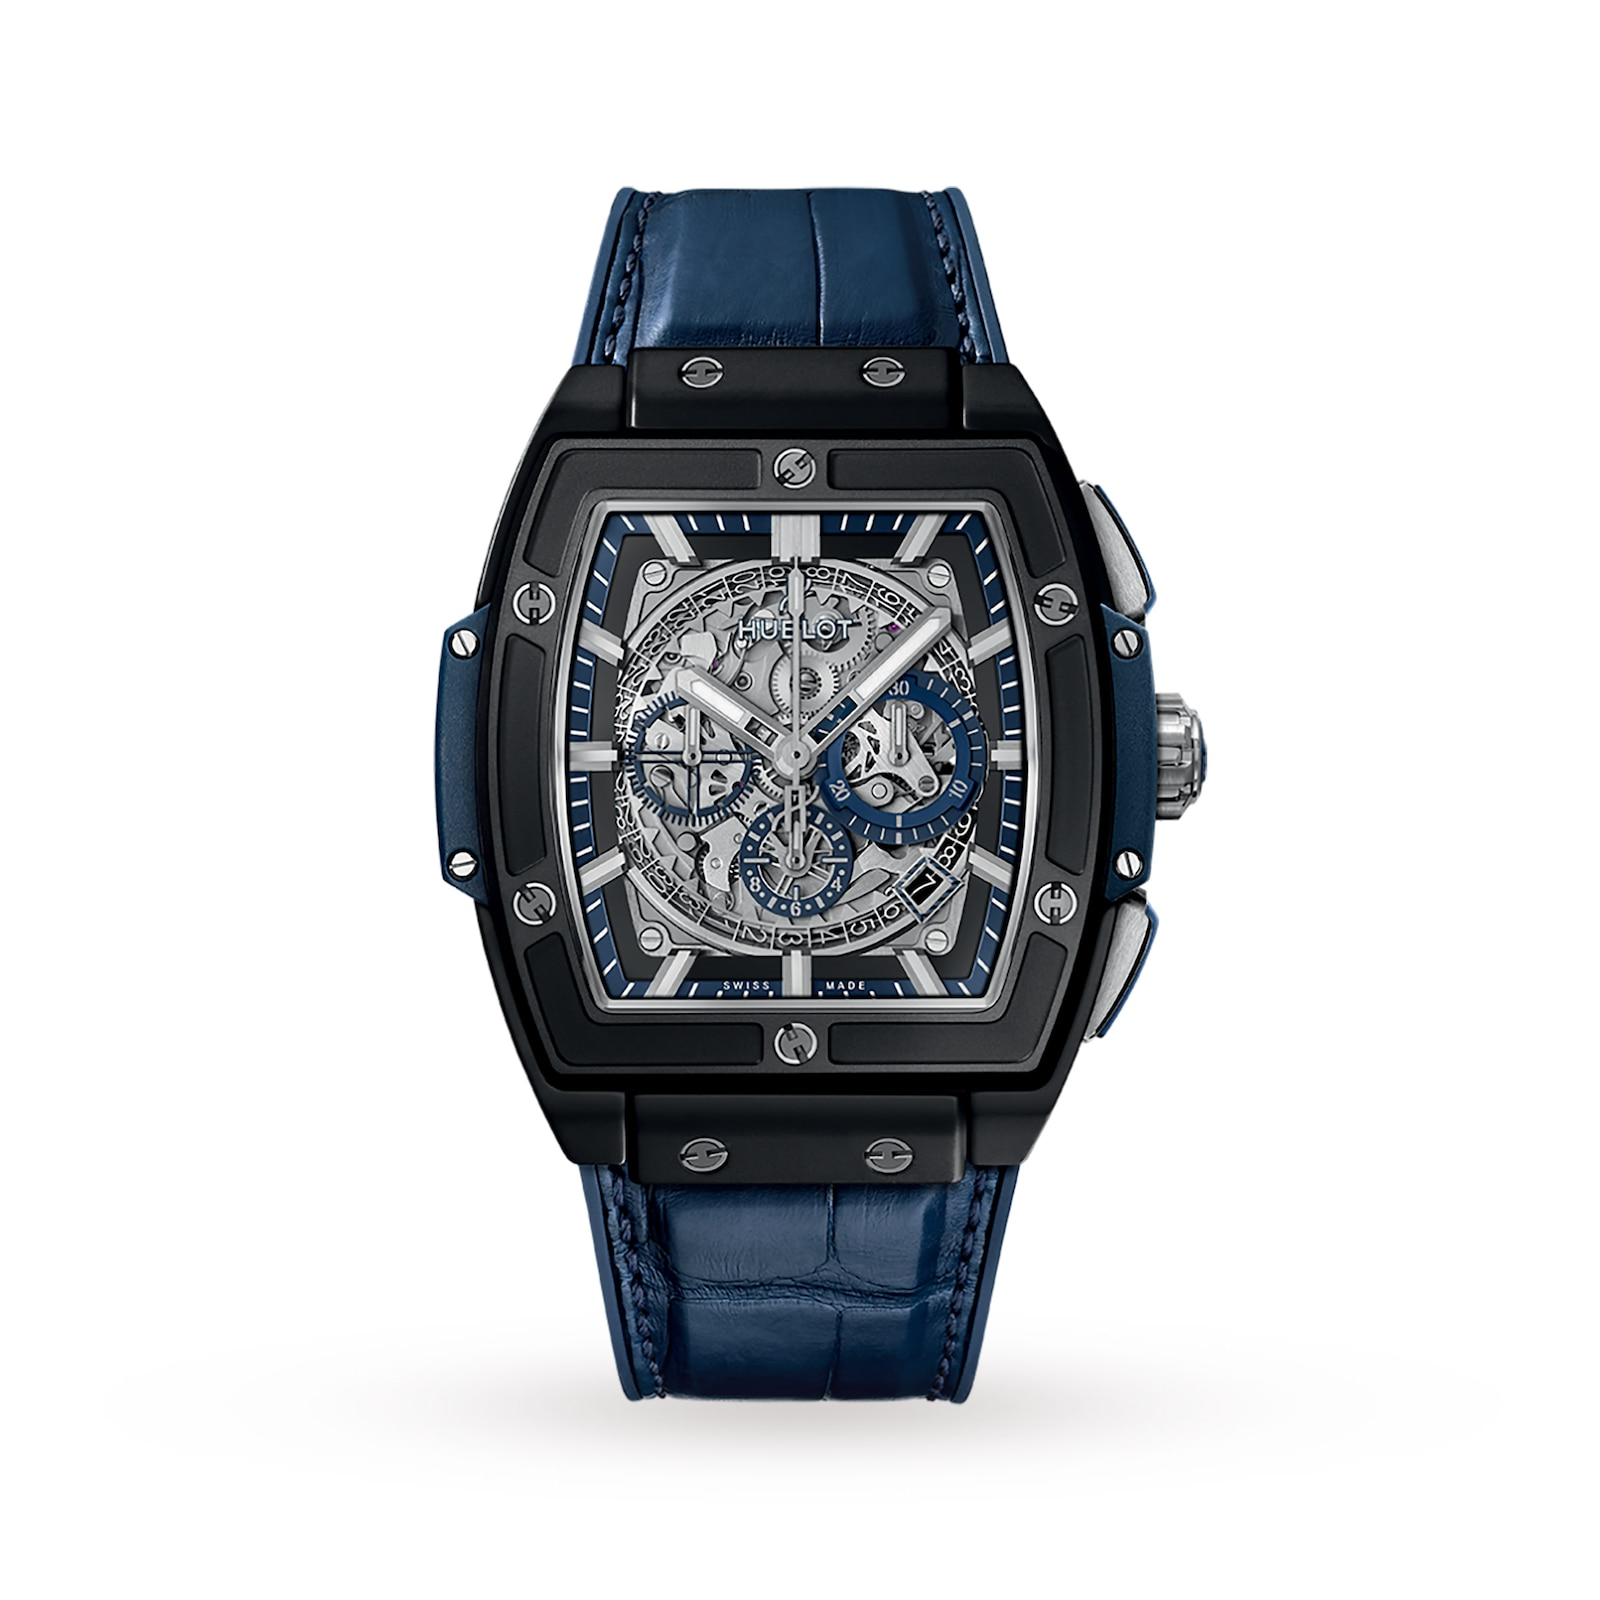 Hublot Hublot Spirit of Big Bang Ceramic Blue 45mm Mens Watch